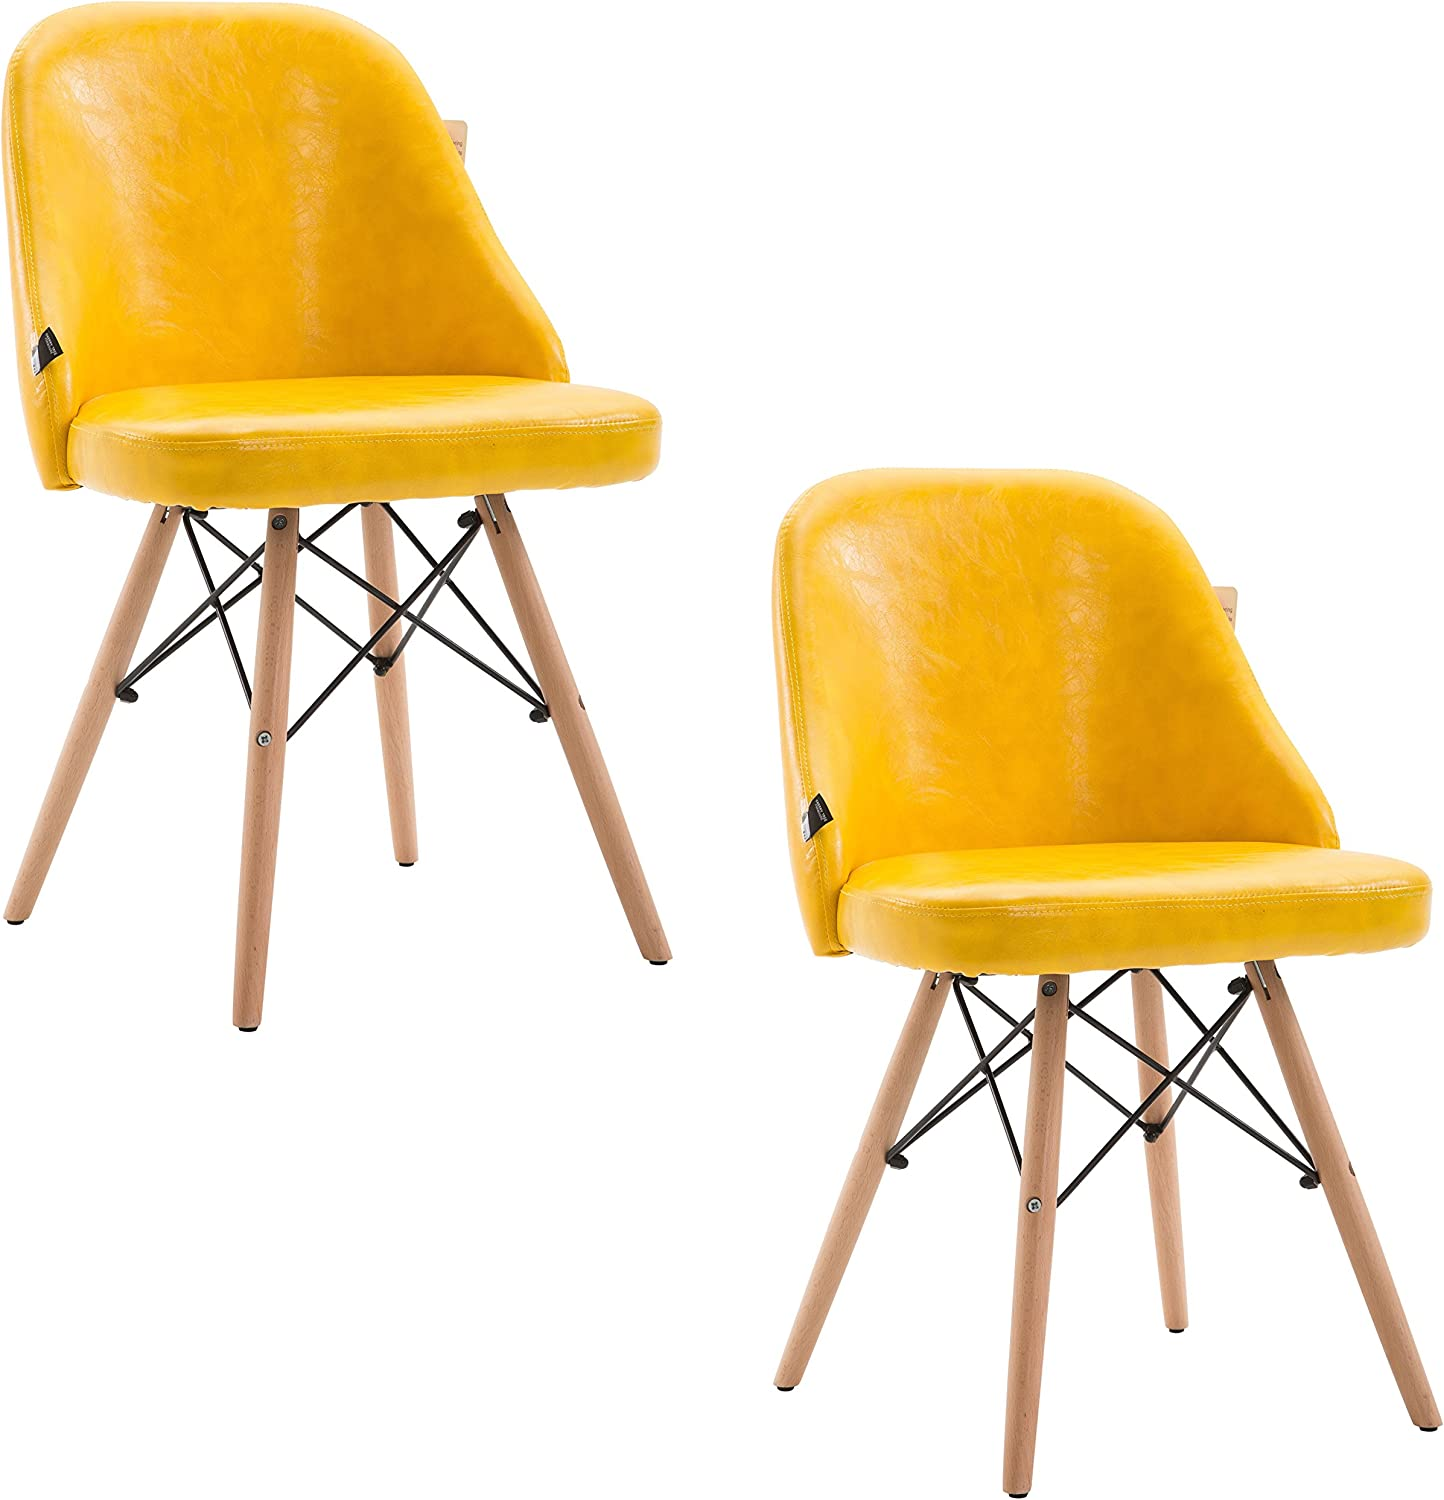 CTF Yellow Padded PU Leather Dining Chairs Retro Modern Dining Chair Pair with Solid Legs, 2 Units